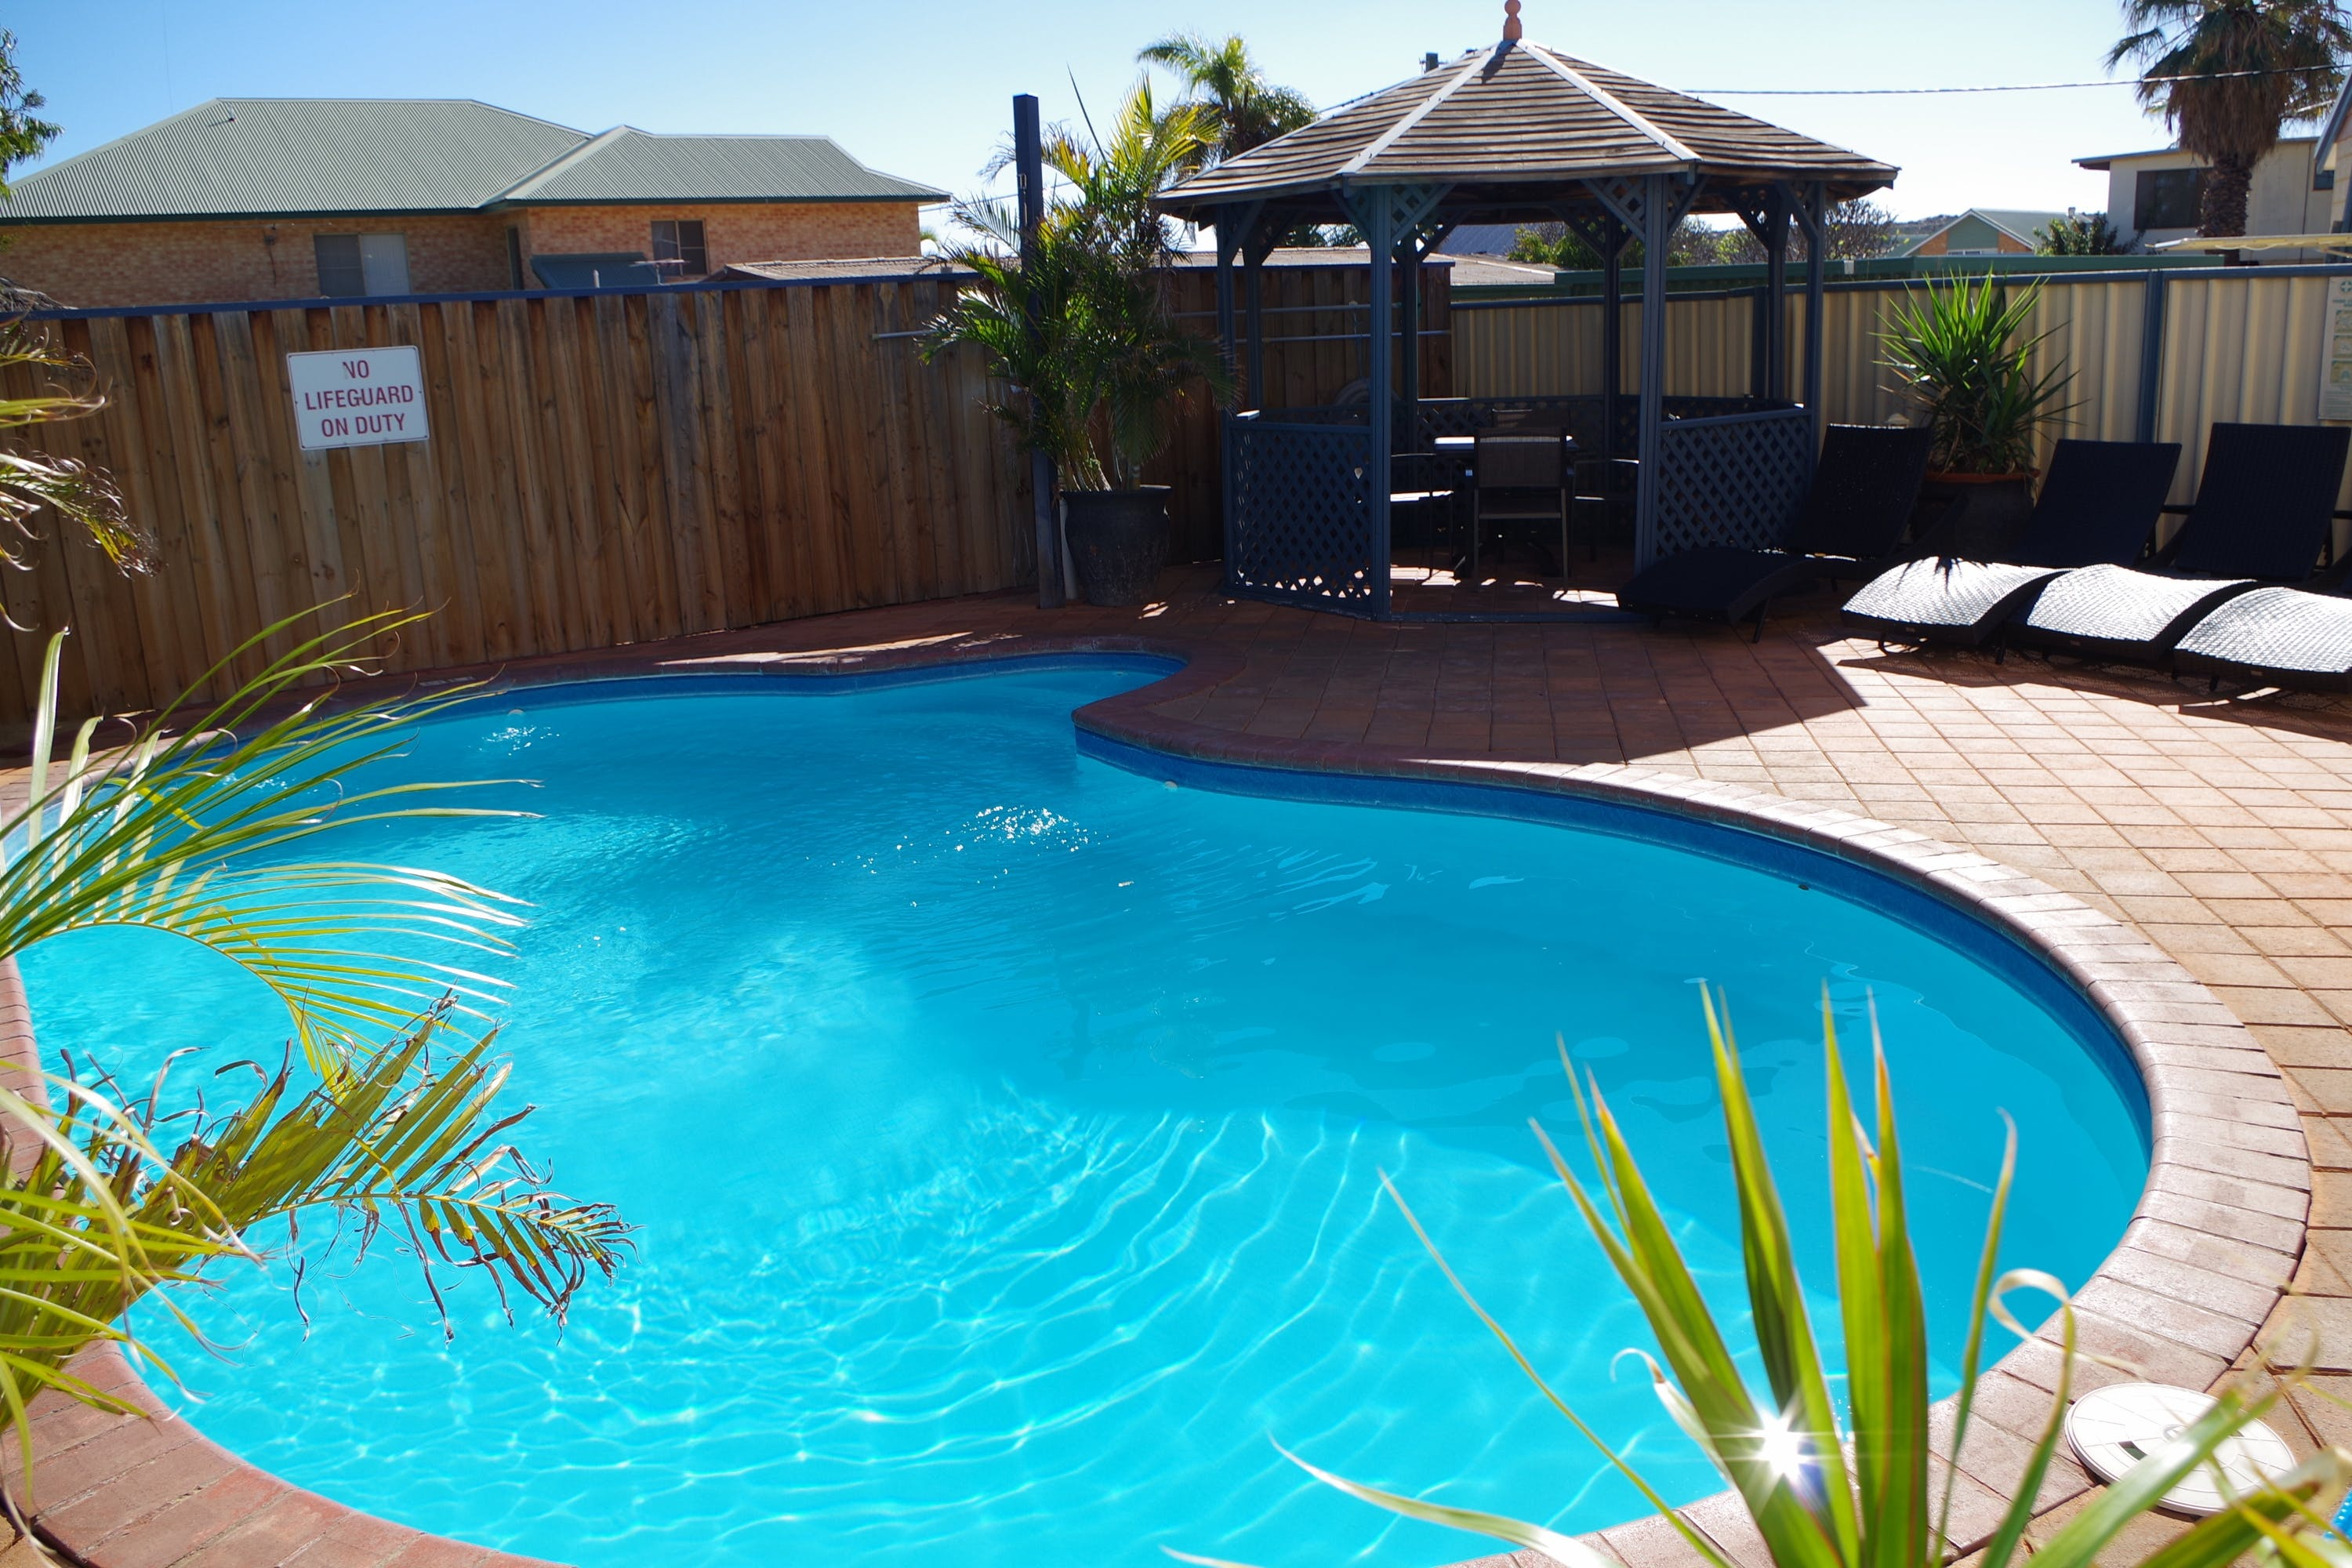 Looking for kalbarri accommodation with pool ? Look no further than Kalbarri Blue Ocean Villas.